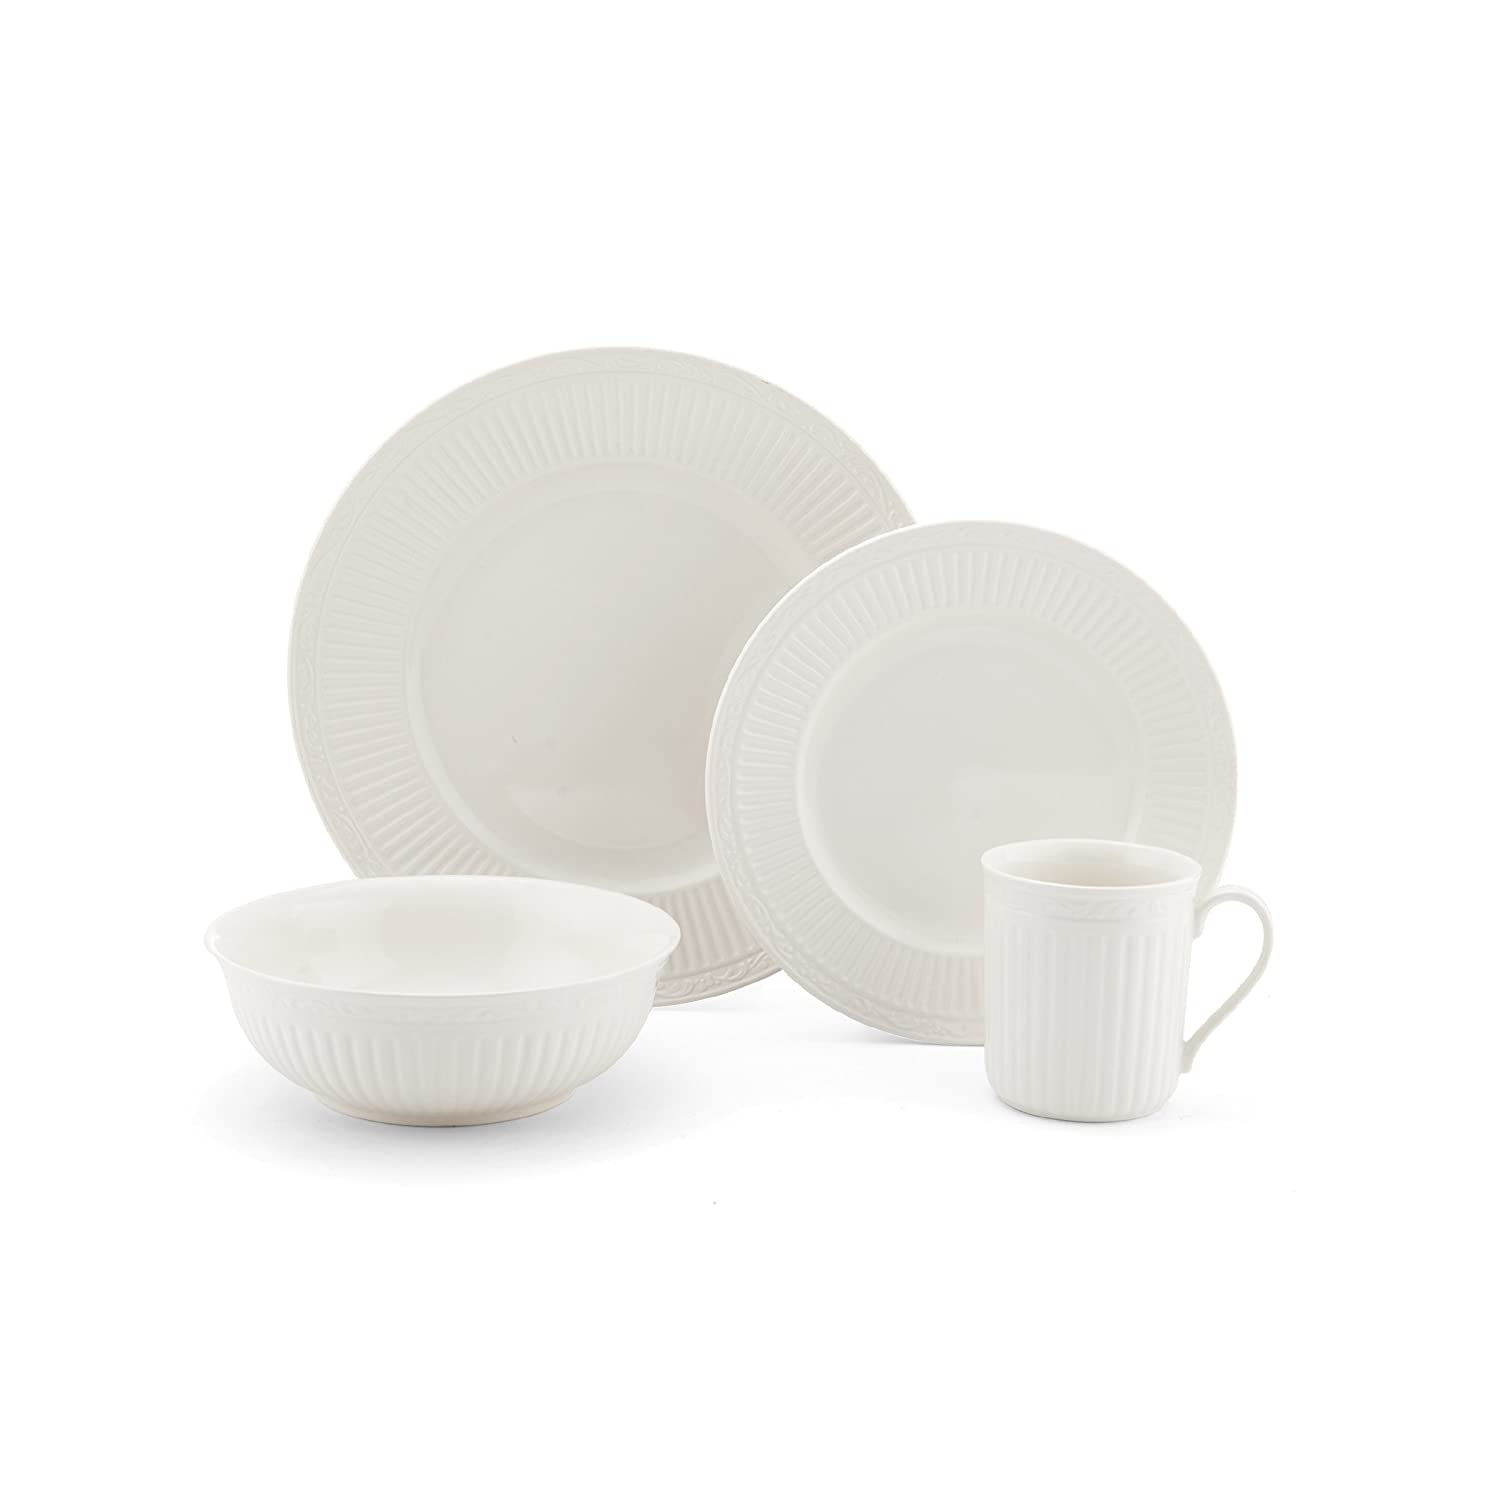 Amazon.com Mikasa Italian Countryside 4-Piece Place Setting Service for 1 Kitchen u0026 Dining  sc 1 st  Amazon.com & Amazon.com: Mikasa Italian Countryside 4-Piece Place Setting ...